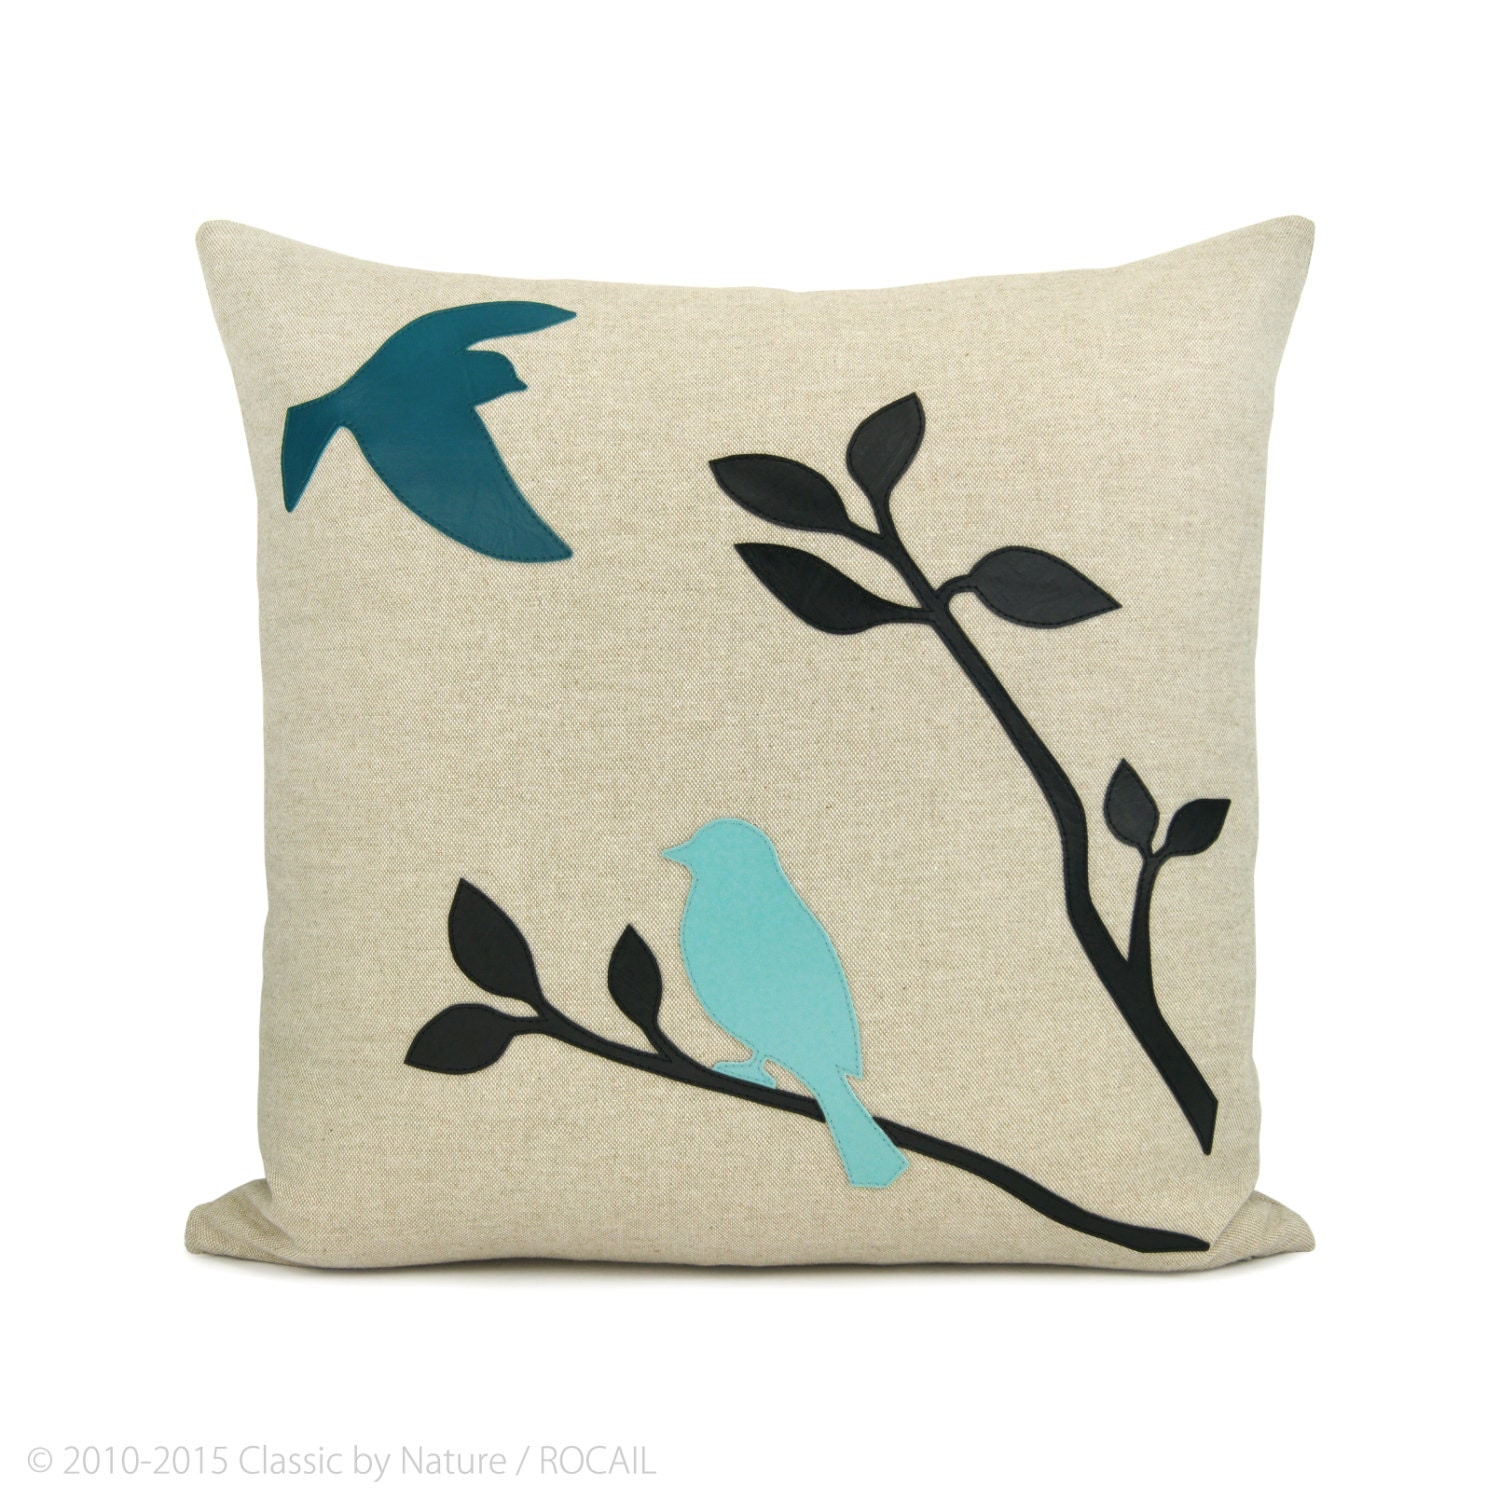 Newport Throw Pillows Birds : 16x16 inches decorative pillow cover with birds in by RocailStudio